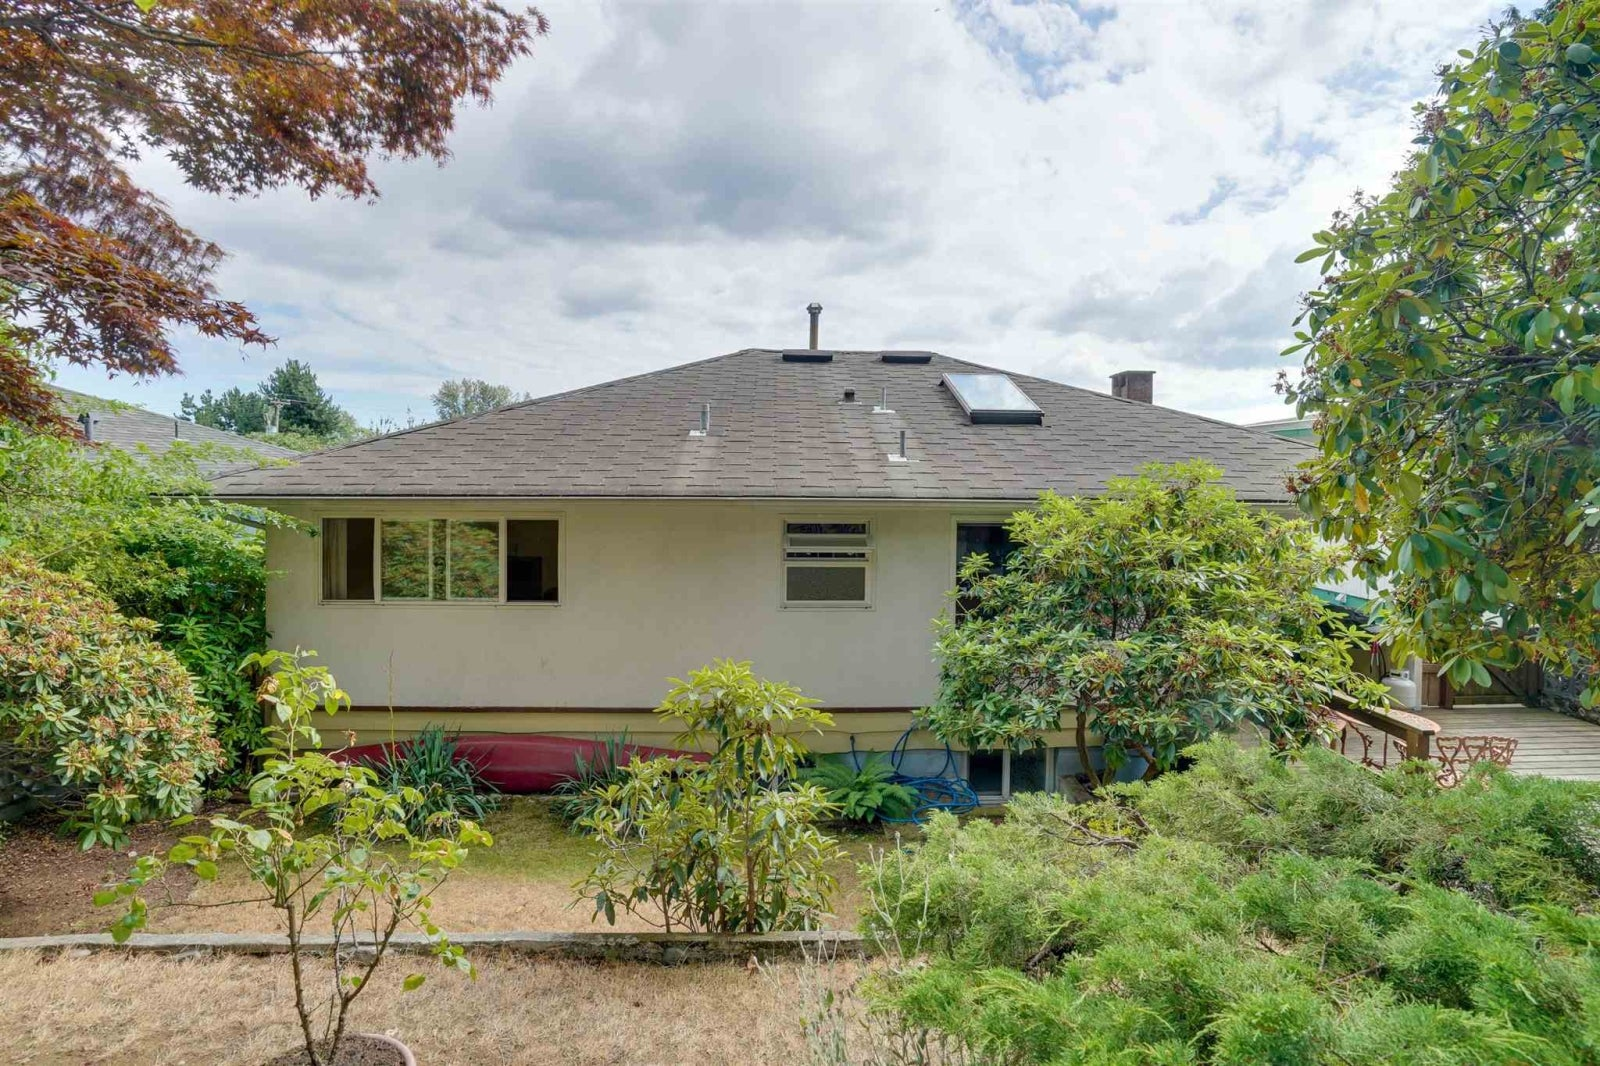 1044 W 17TH STREET - Pemberton Heights House/Single Family for sale, 3 Bedrooms (R2602389) #17